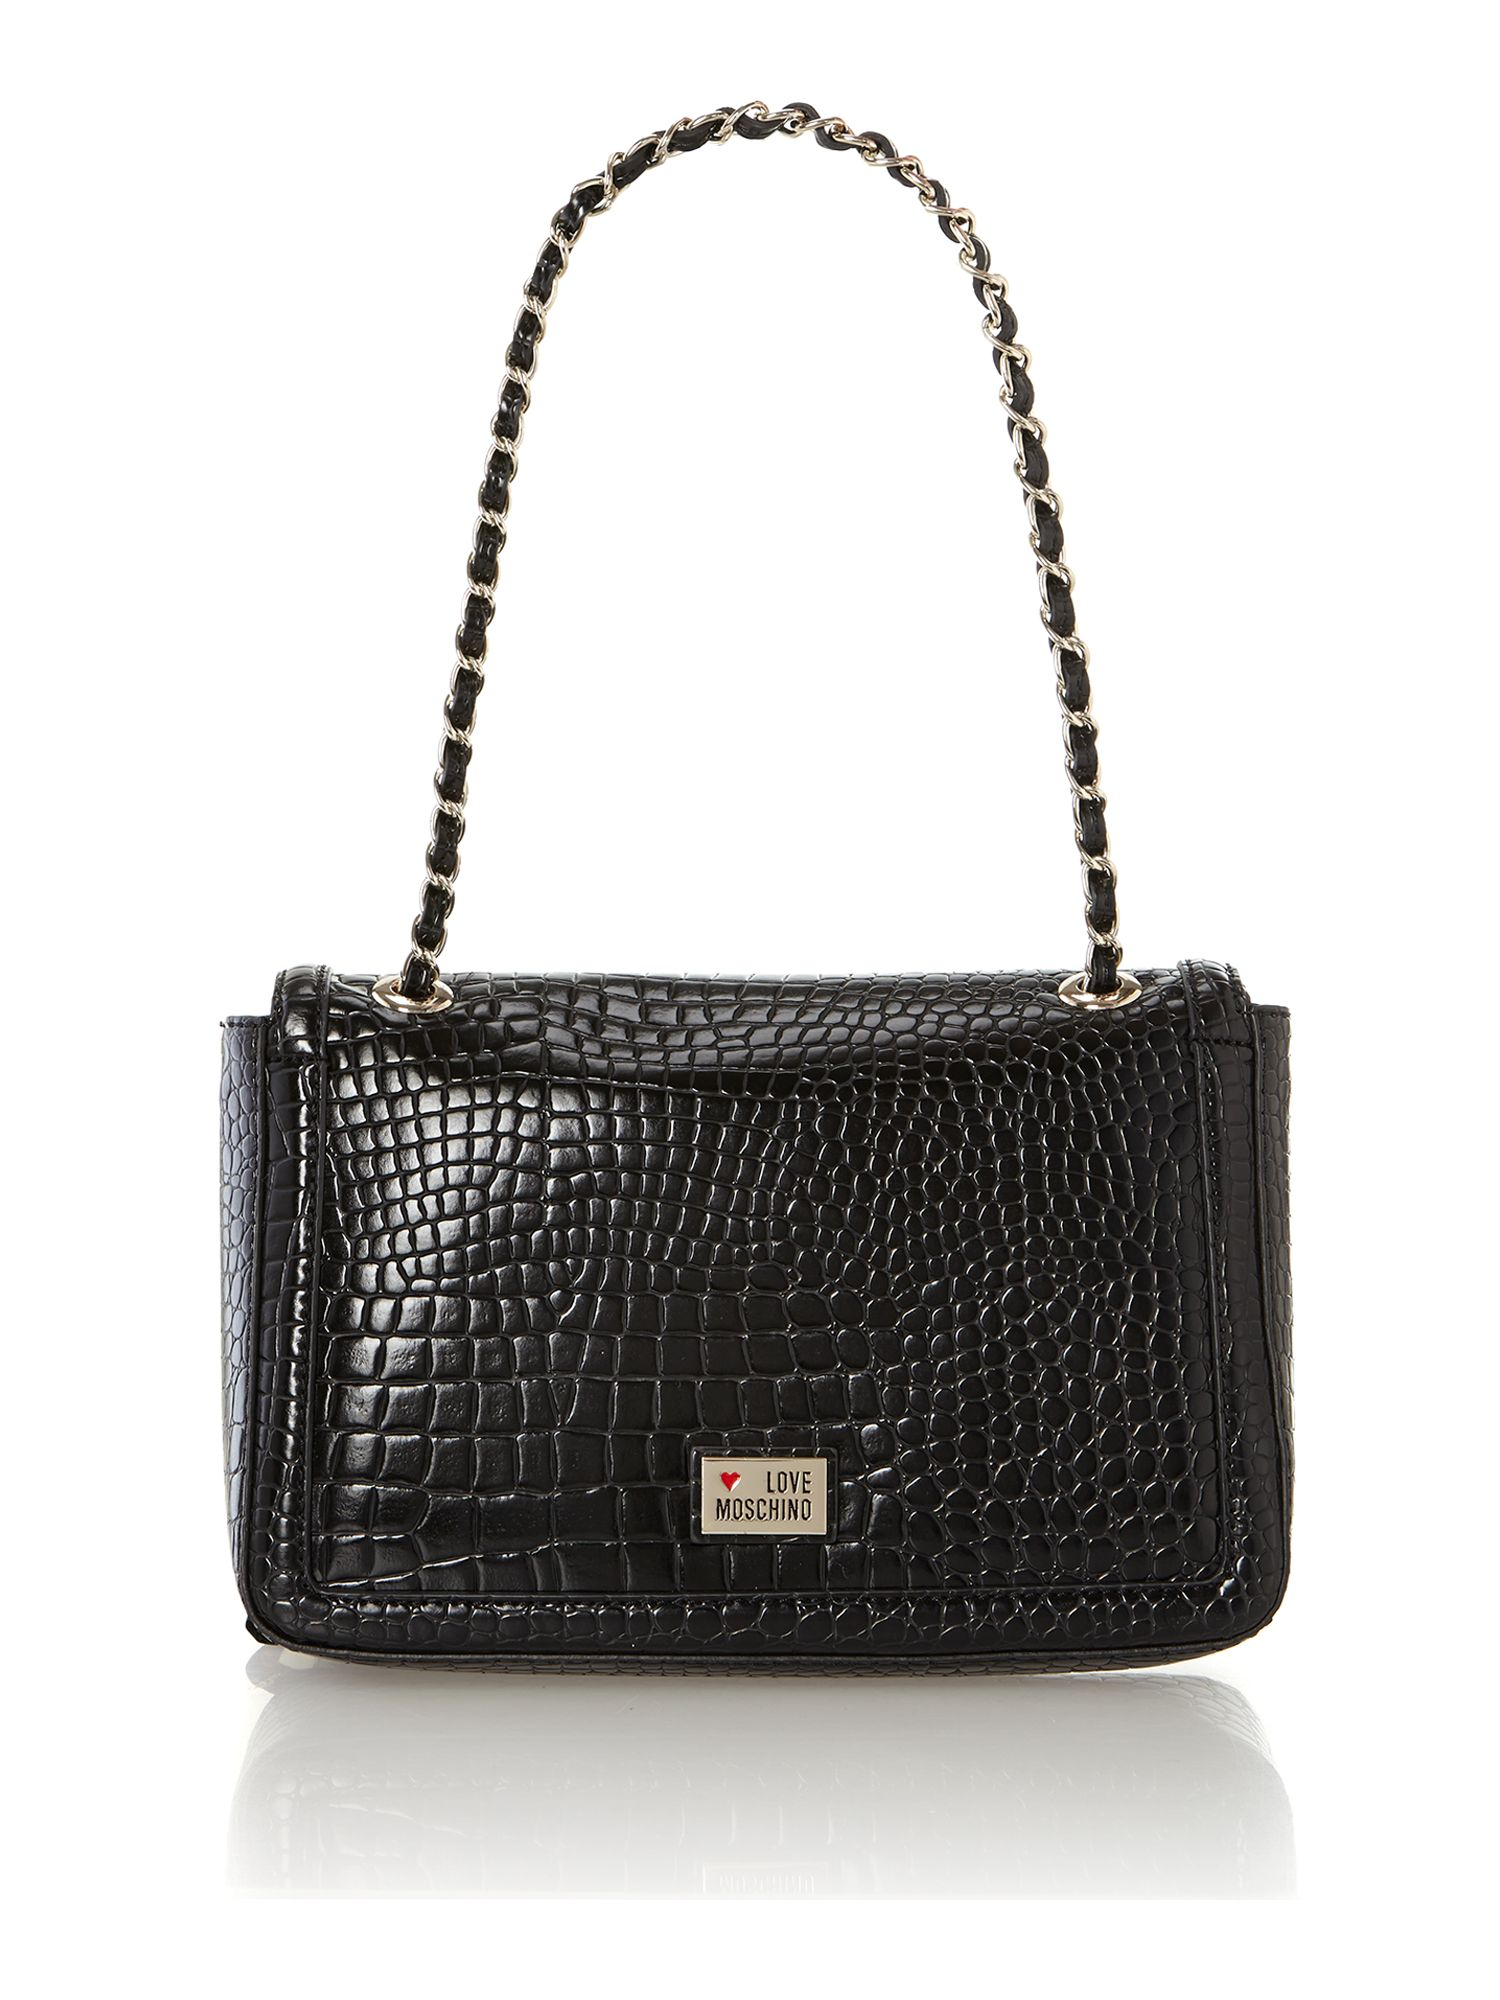 Black croc flapover shoulder bag